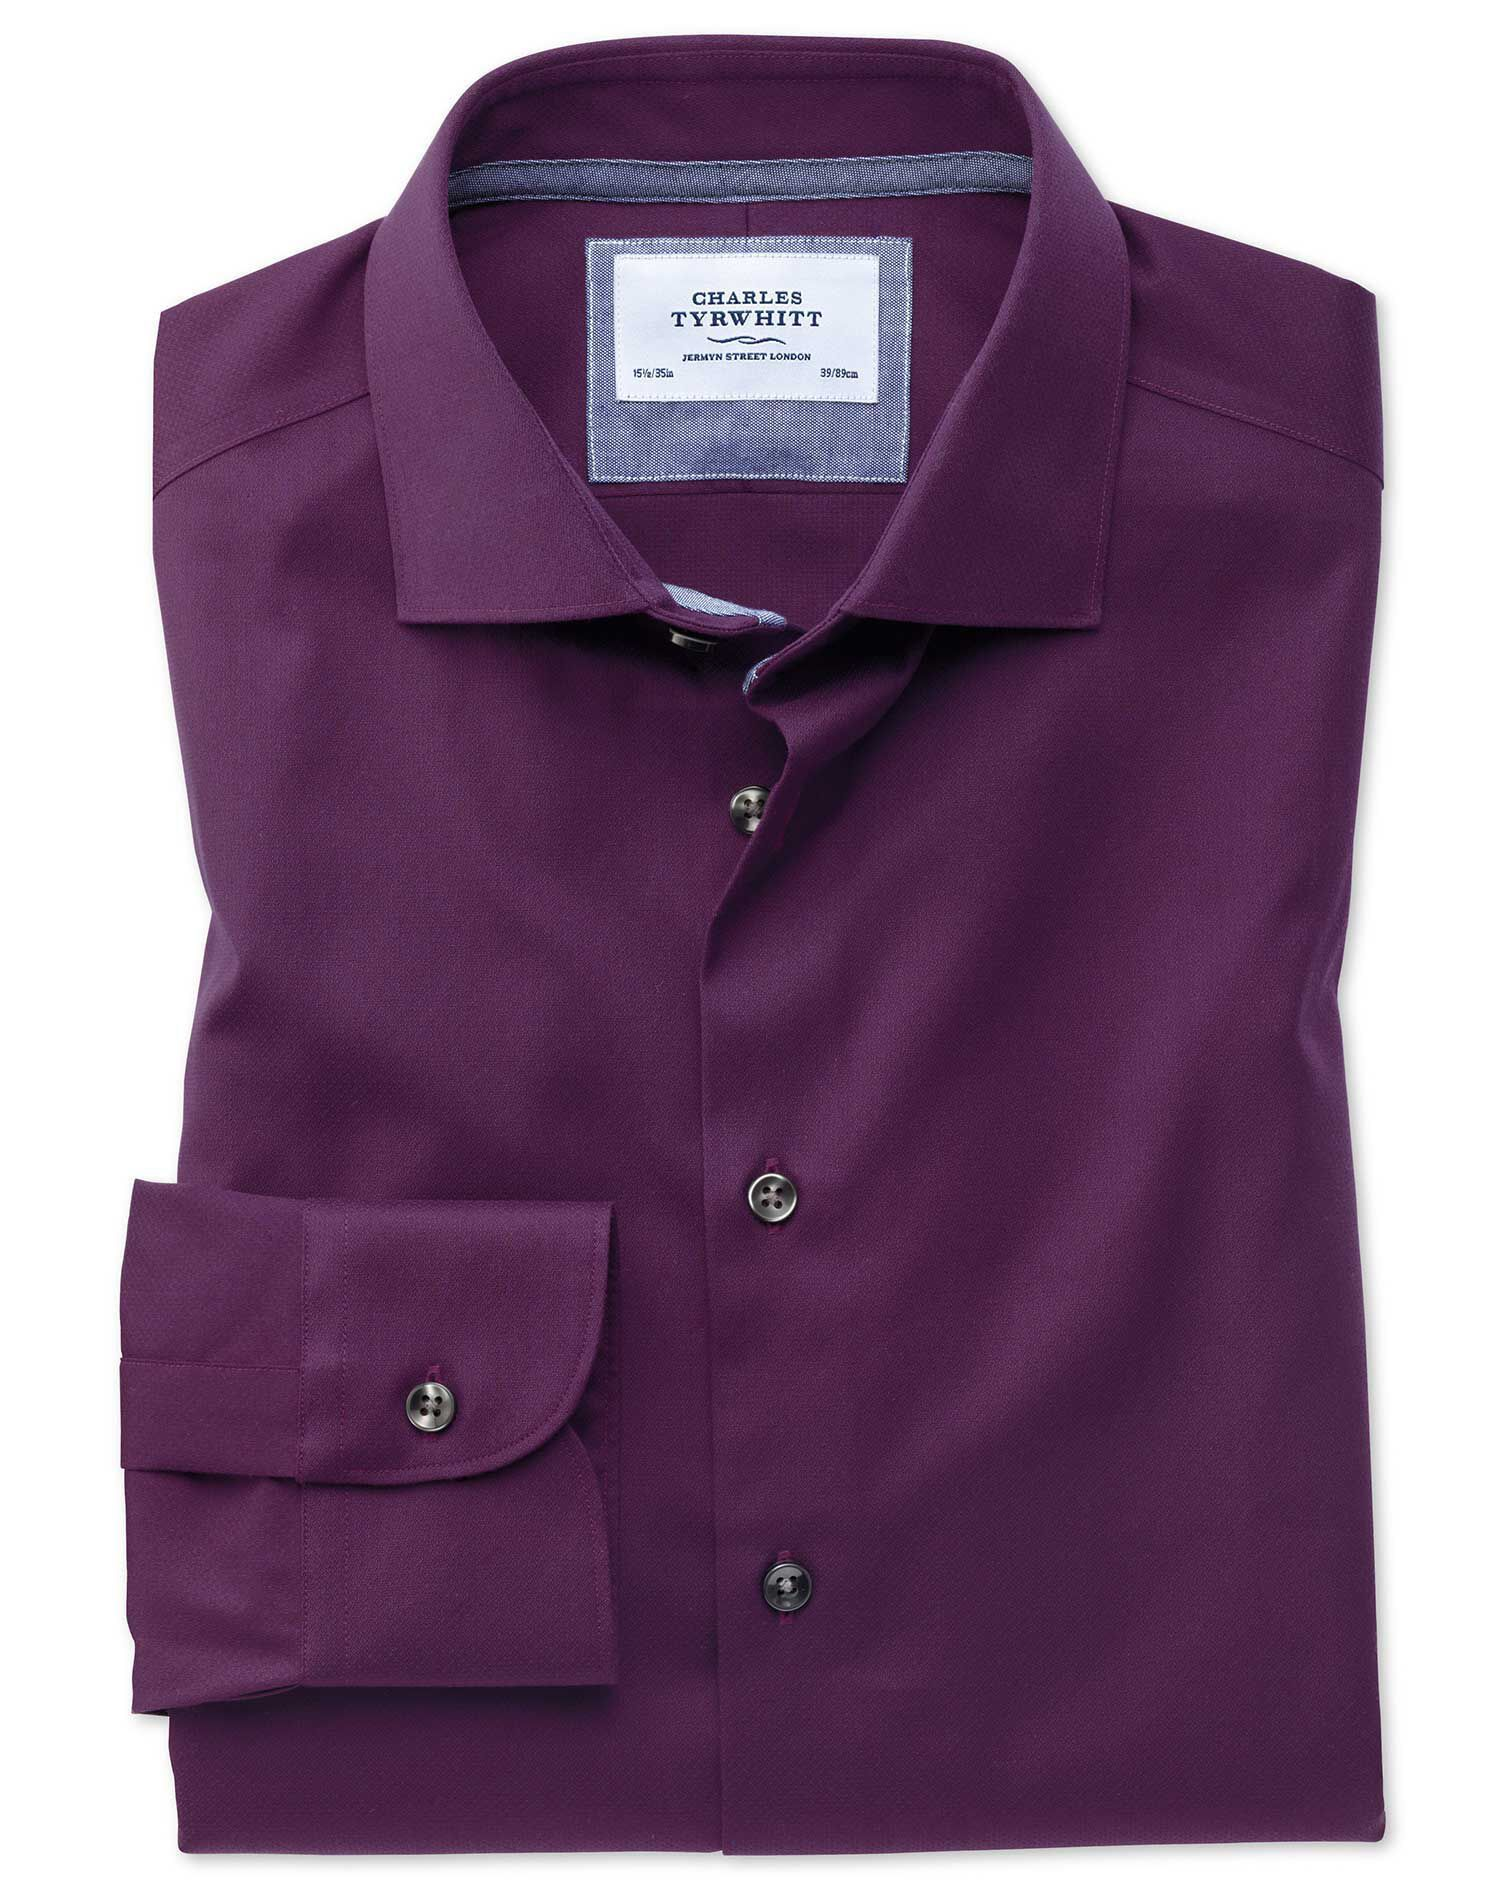 Extra Slim Fit Semi-Cutaway Business Casual Non-Iron Modern Textures Dark Purple Cotton Formal Shirt